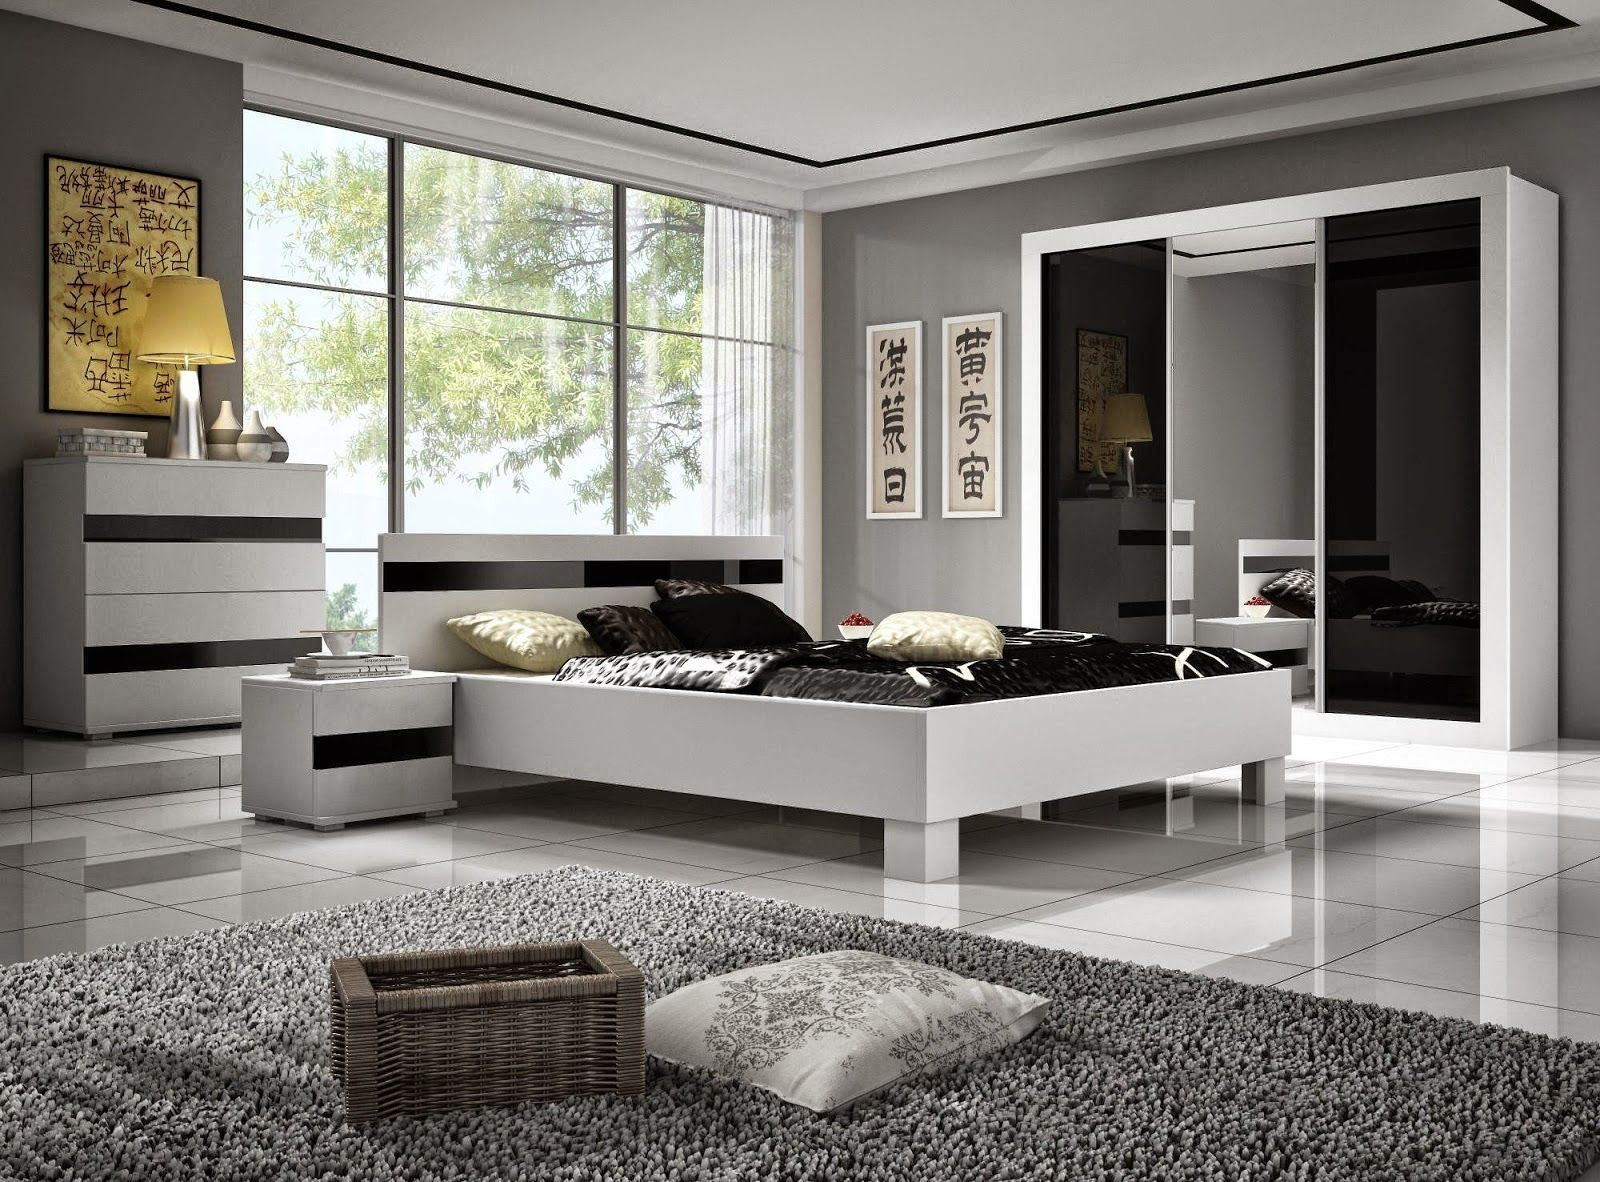 ديكورات غرف نوم بالاسود والابيض Minimalist Bedroom Furniture Furniture Bedroom Furniture Design